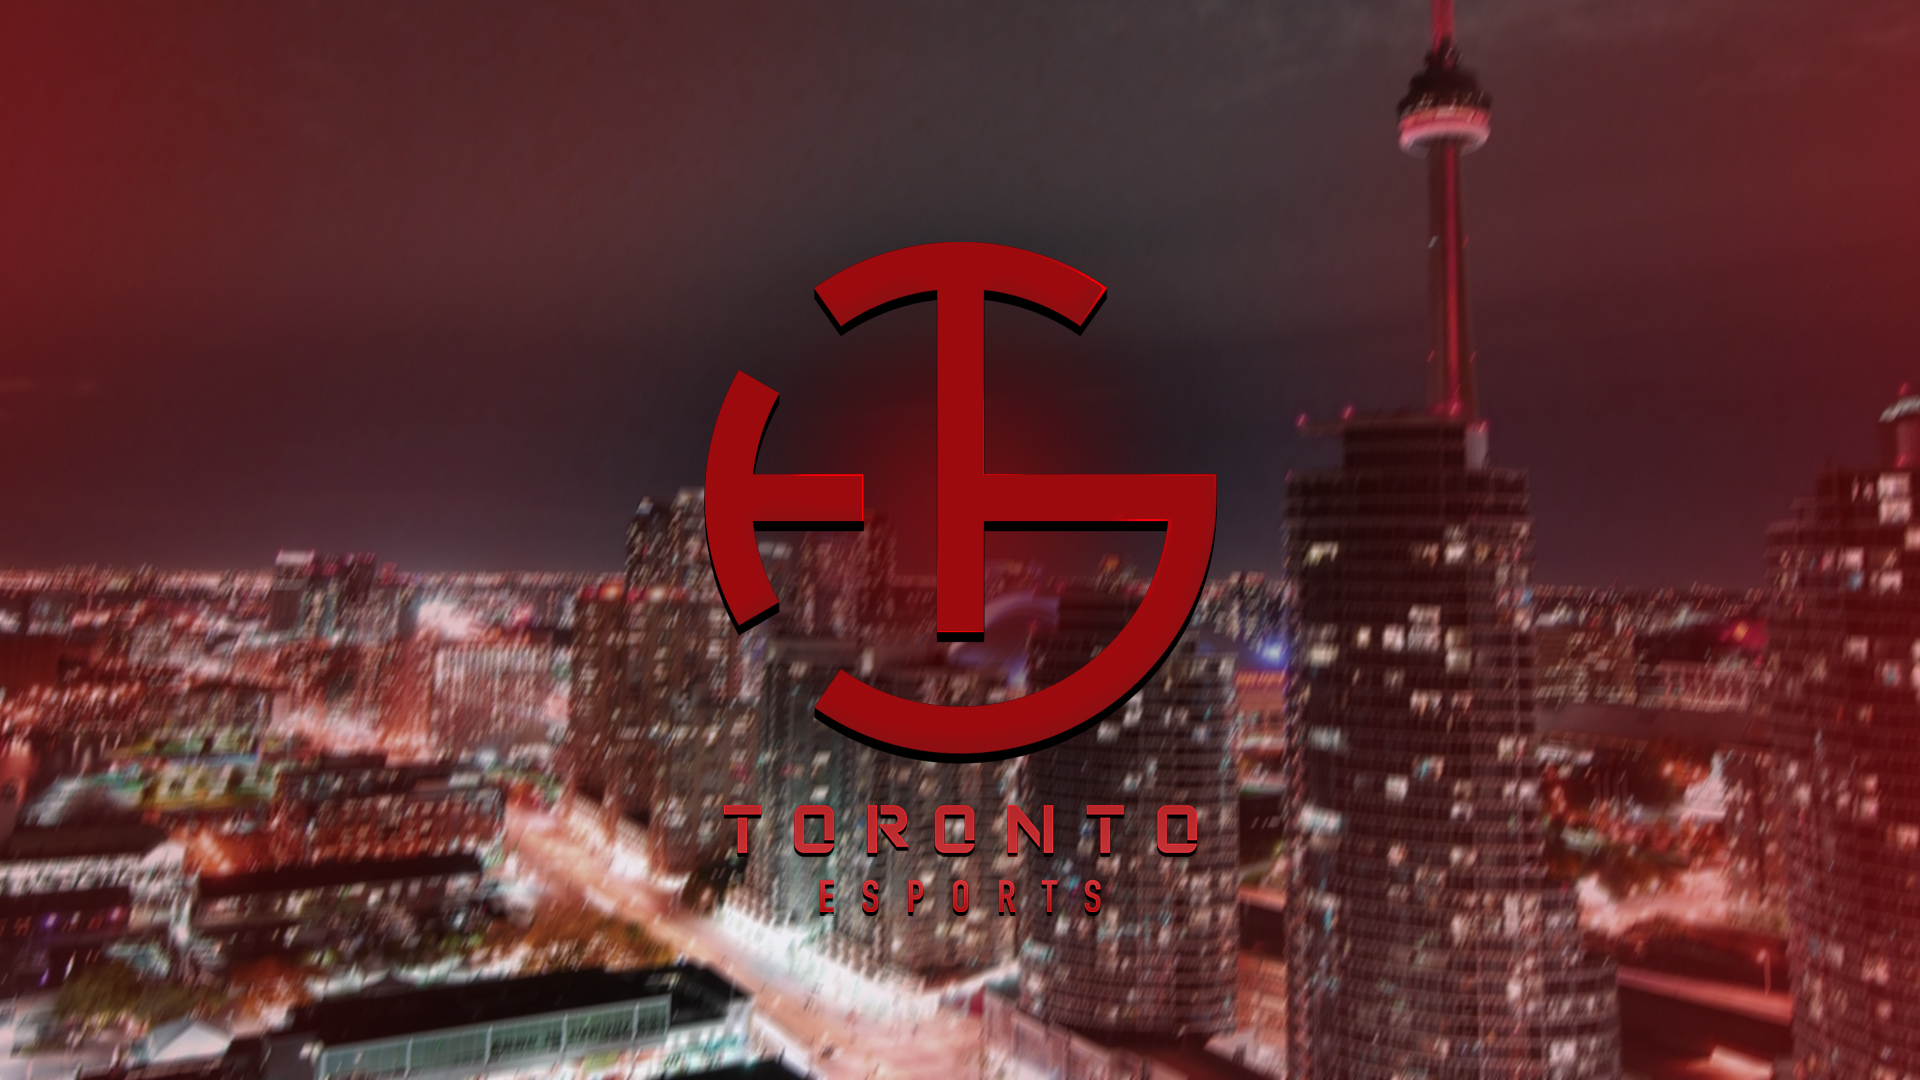 Esport Wallpaper Android: Toronto Esports Releases Dellor After Racist Language